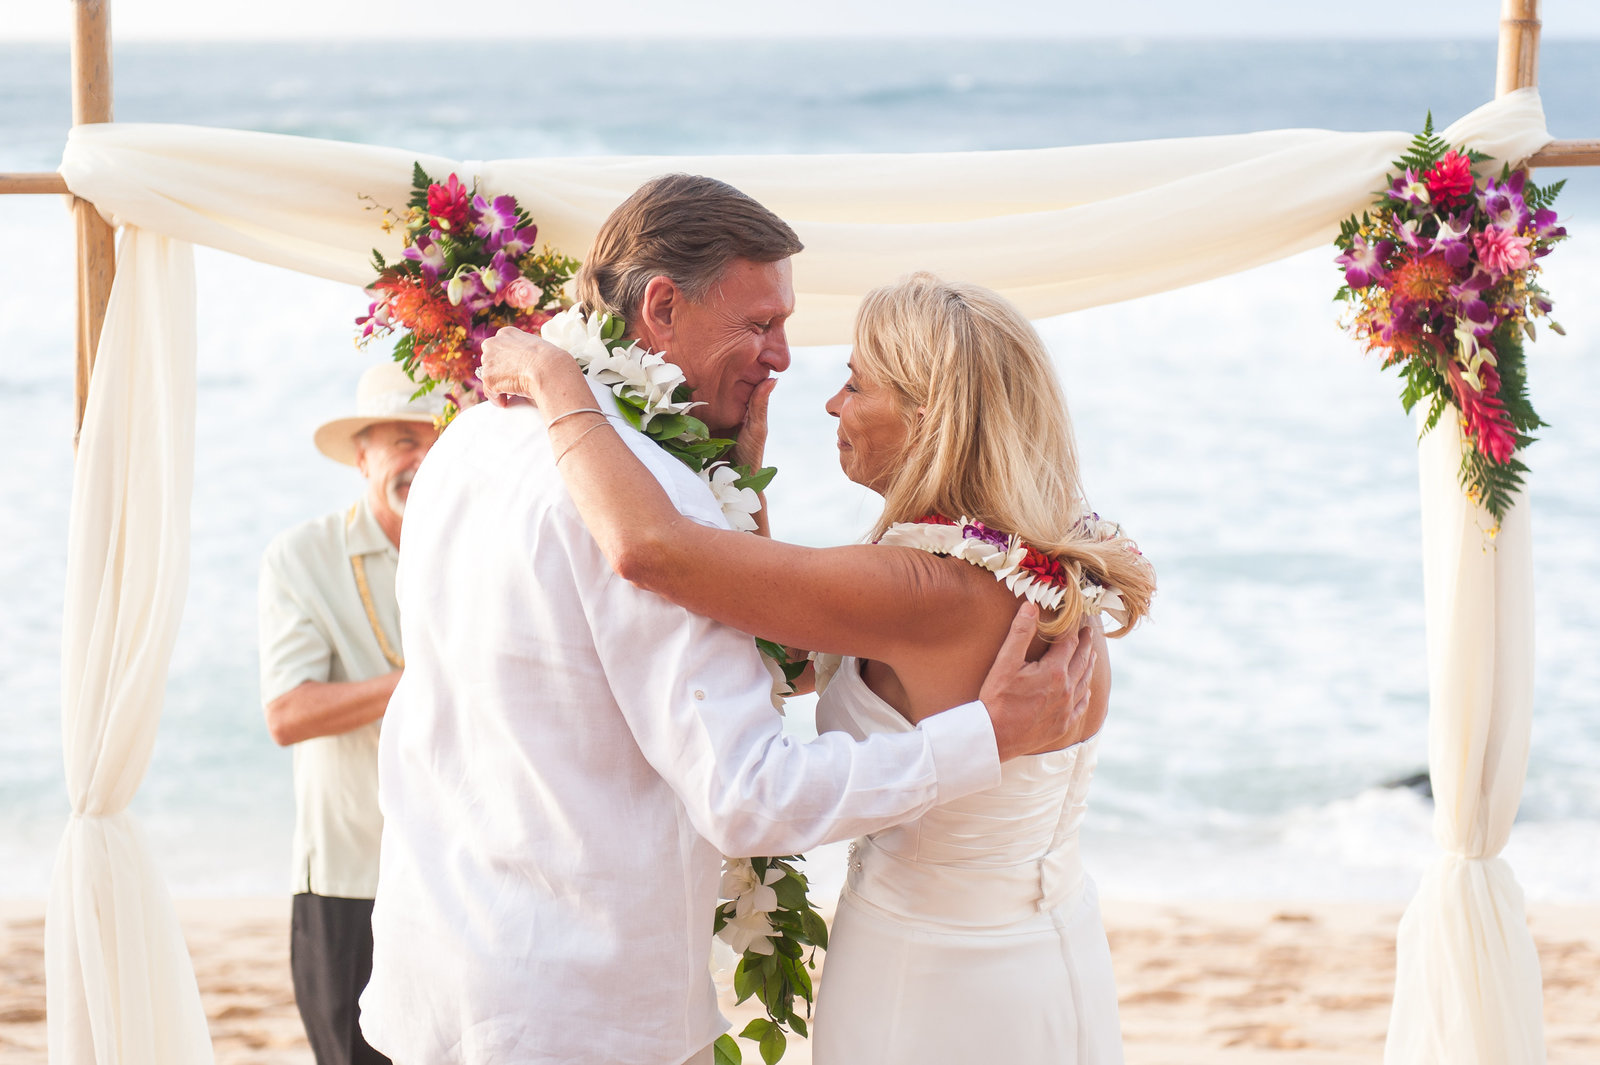 Candy-and-Dave-Hawaii-Wedding-Melissa-Desjardins-Photography-7